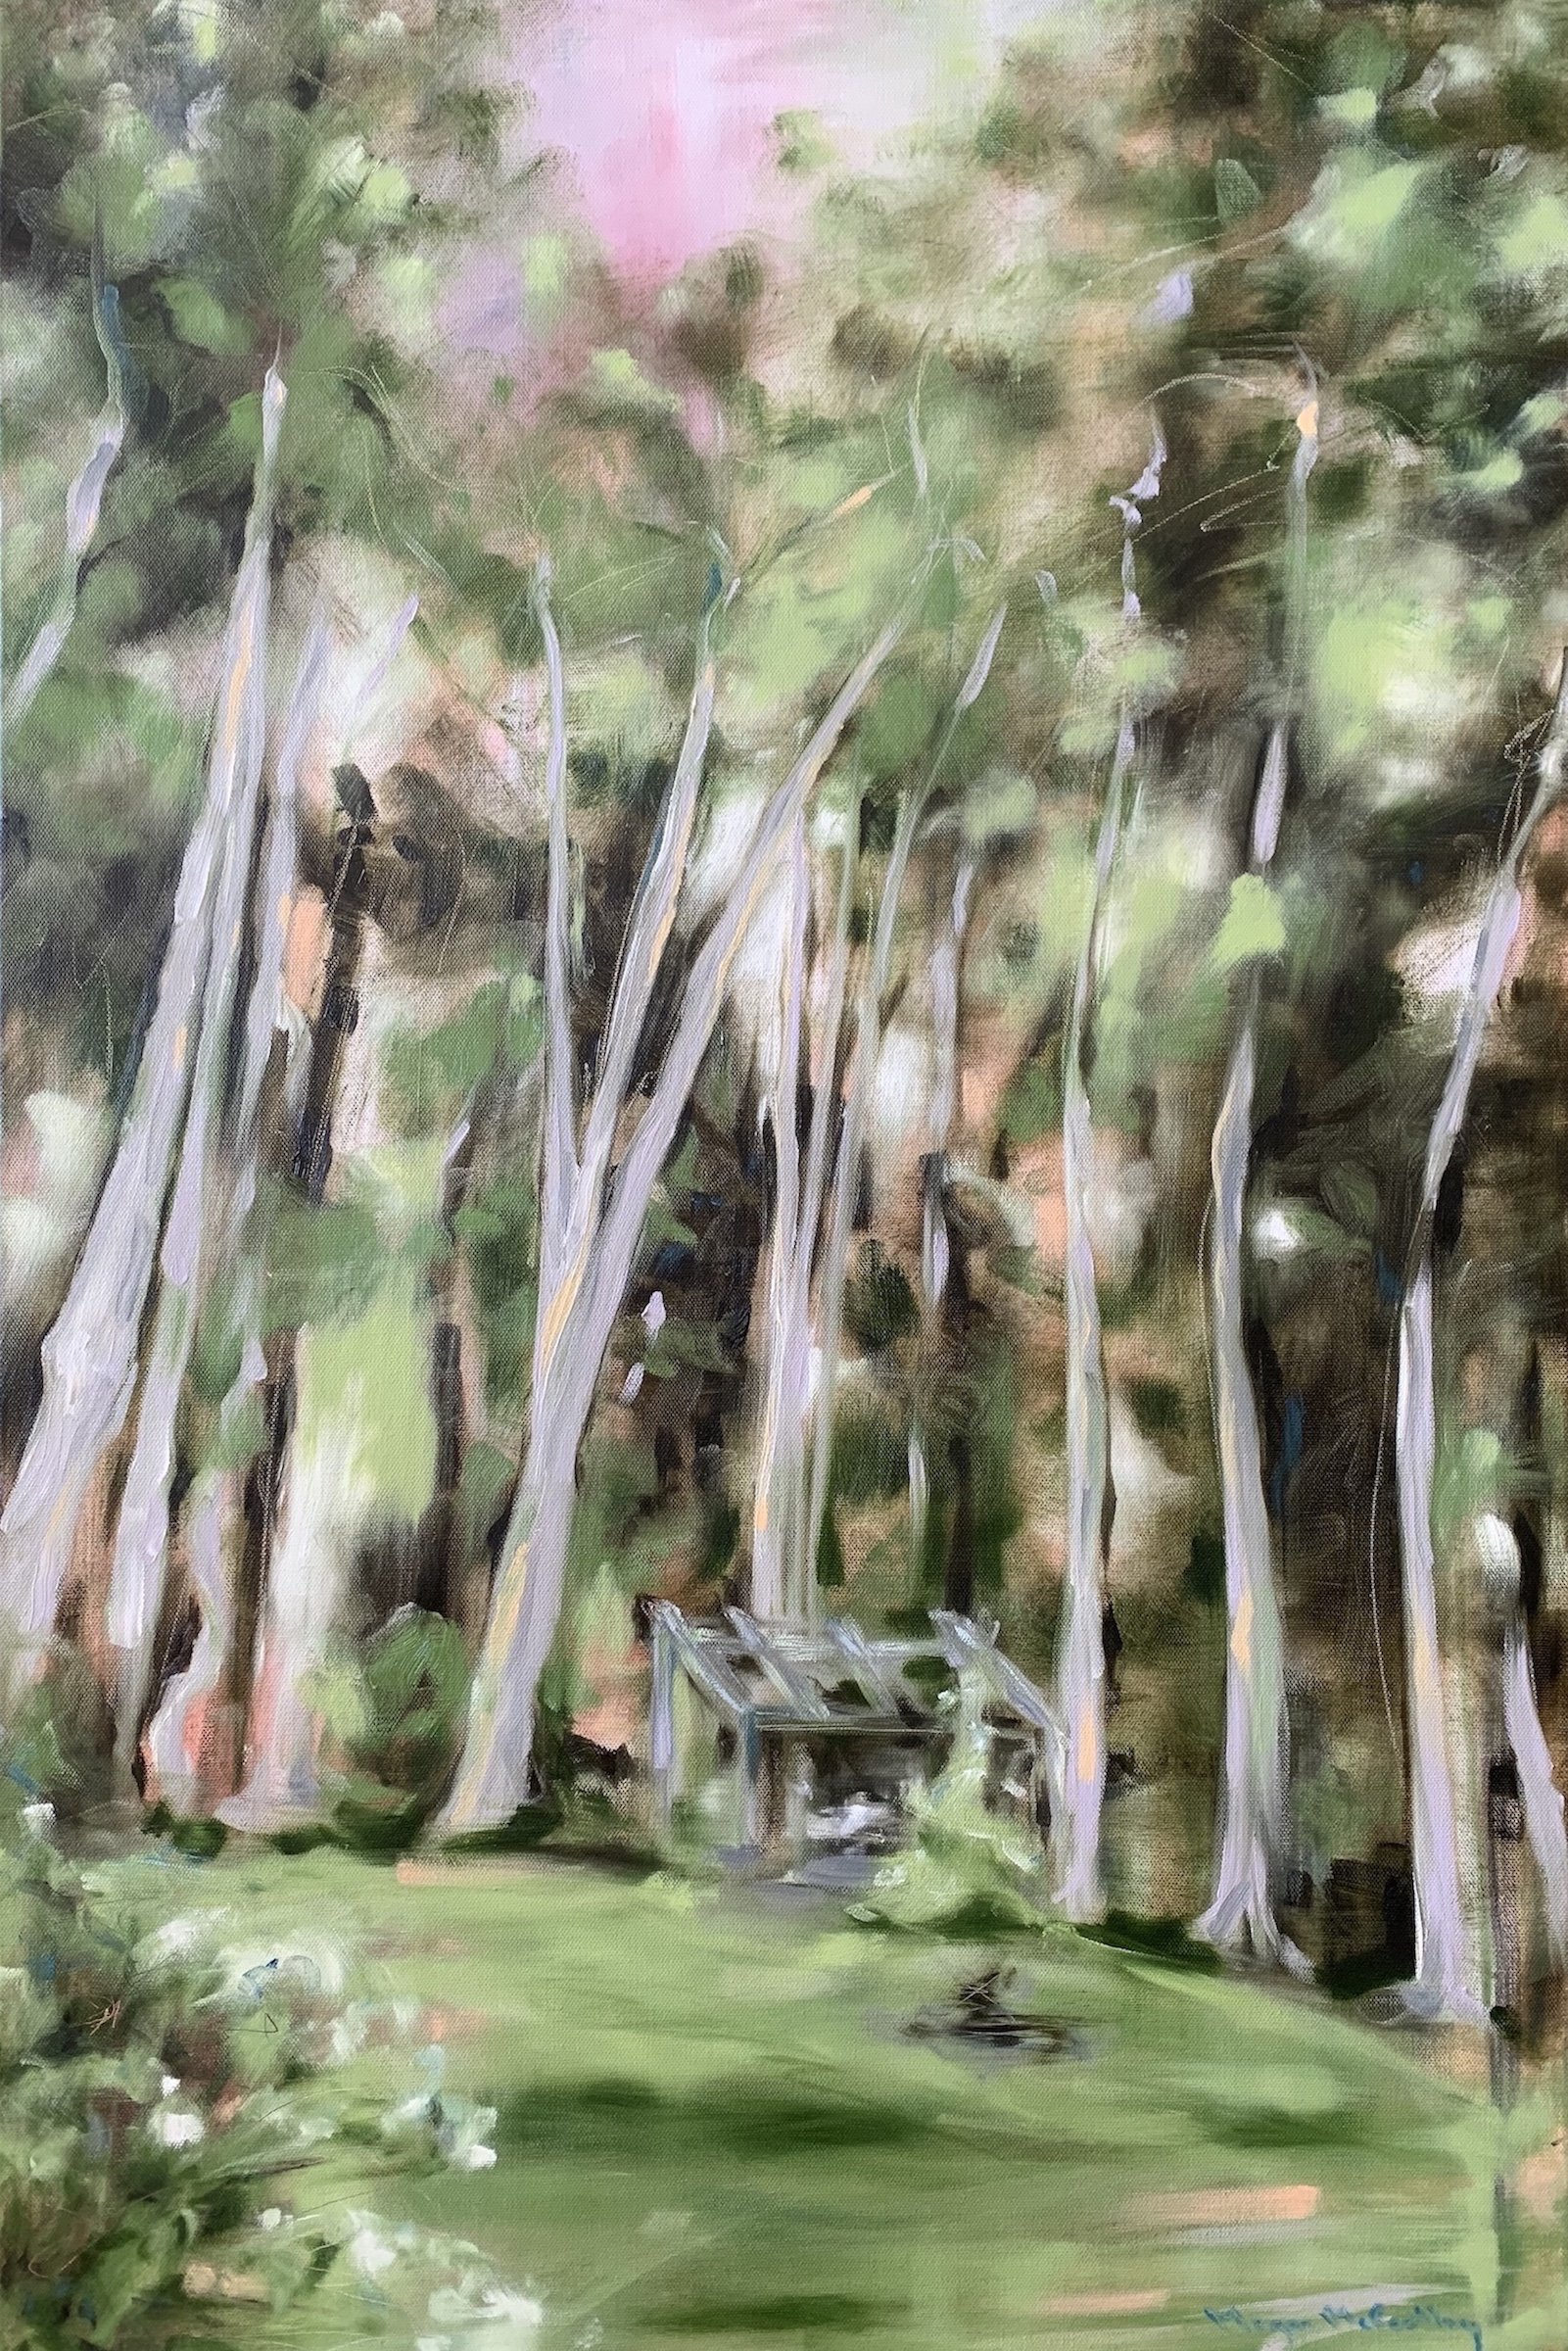 Megan McCarthy - Serenity Lies Beneath the Boughs of the Pines